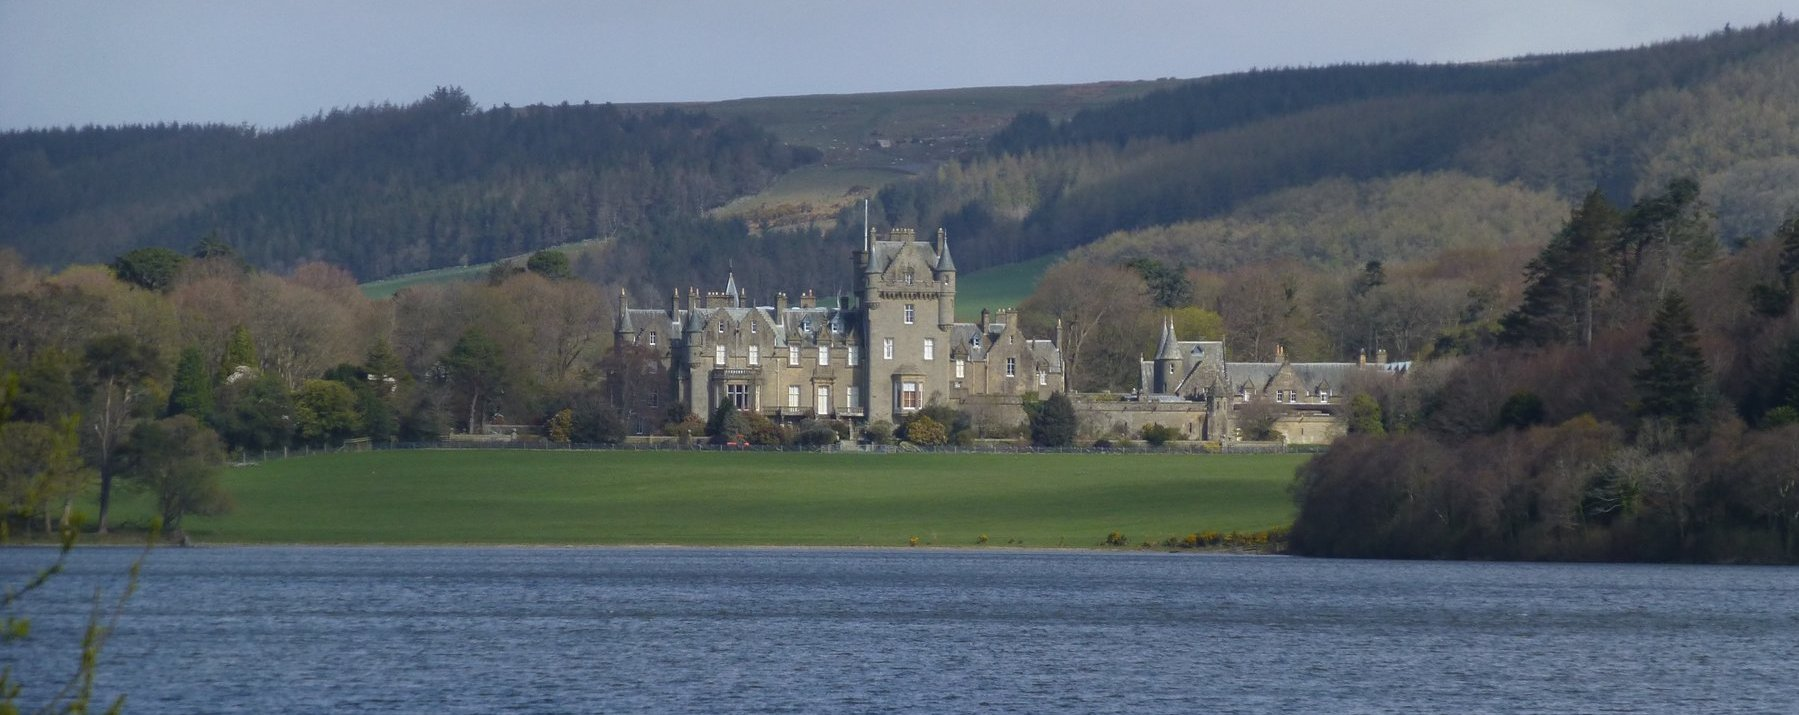 Looking across White Loch to Castle Kennedy